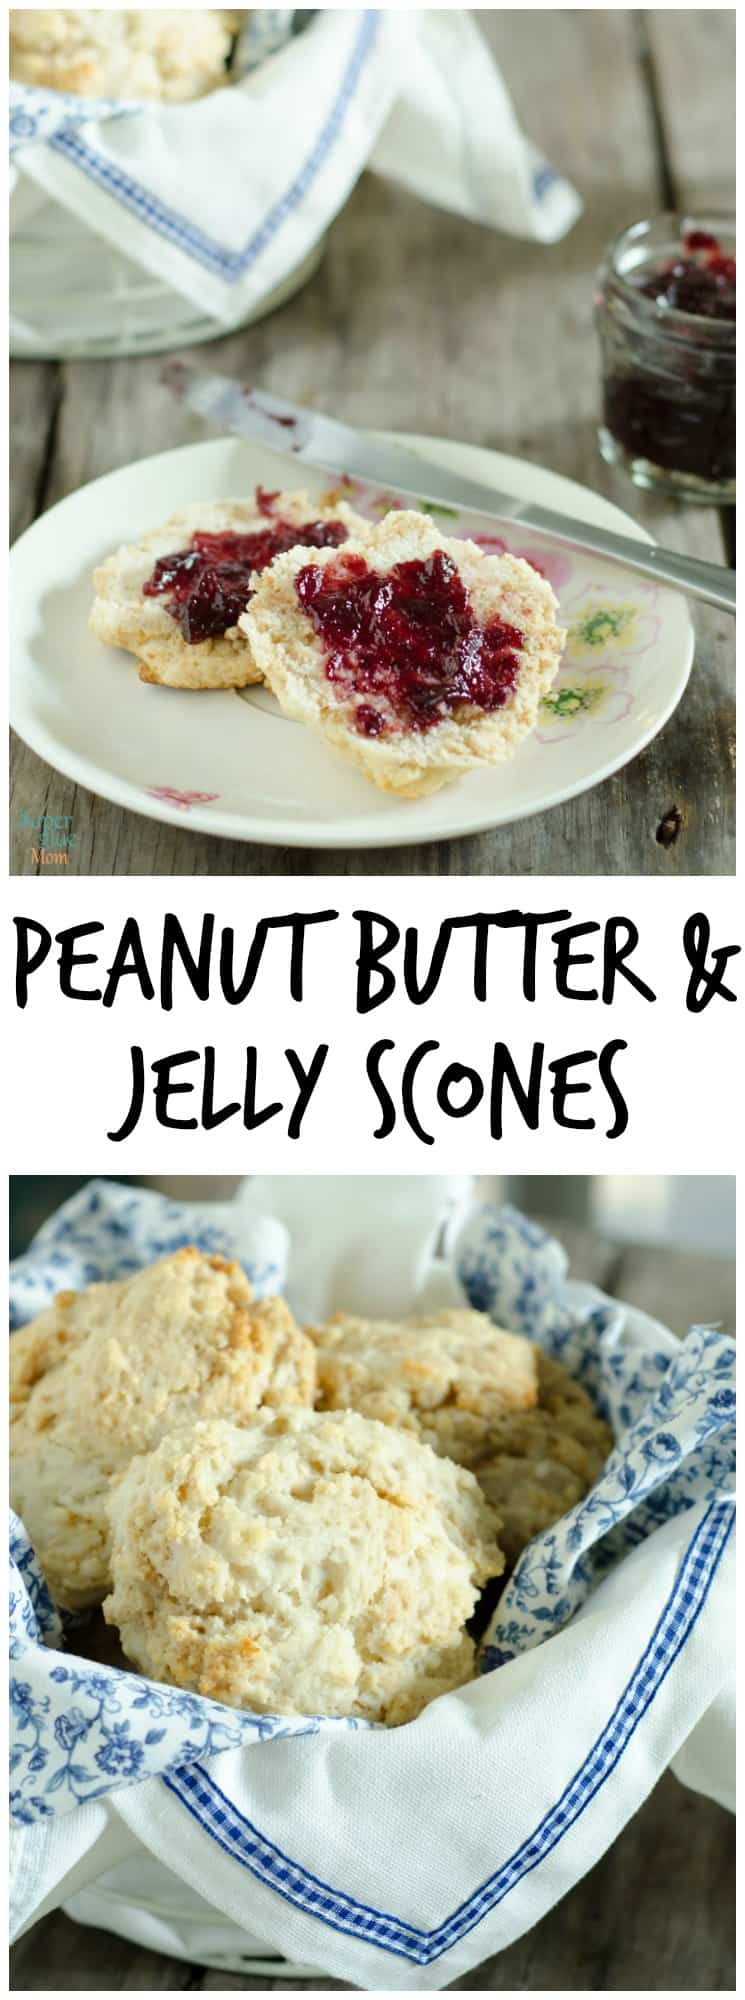 You are going to wonder where this peanut butter and jelly scones recipe has been hiding this whole time! Easy and delicious… you better double the recipe.